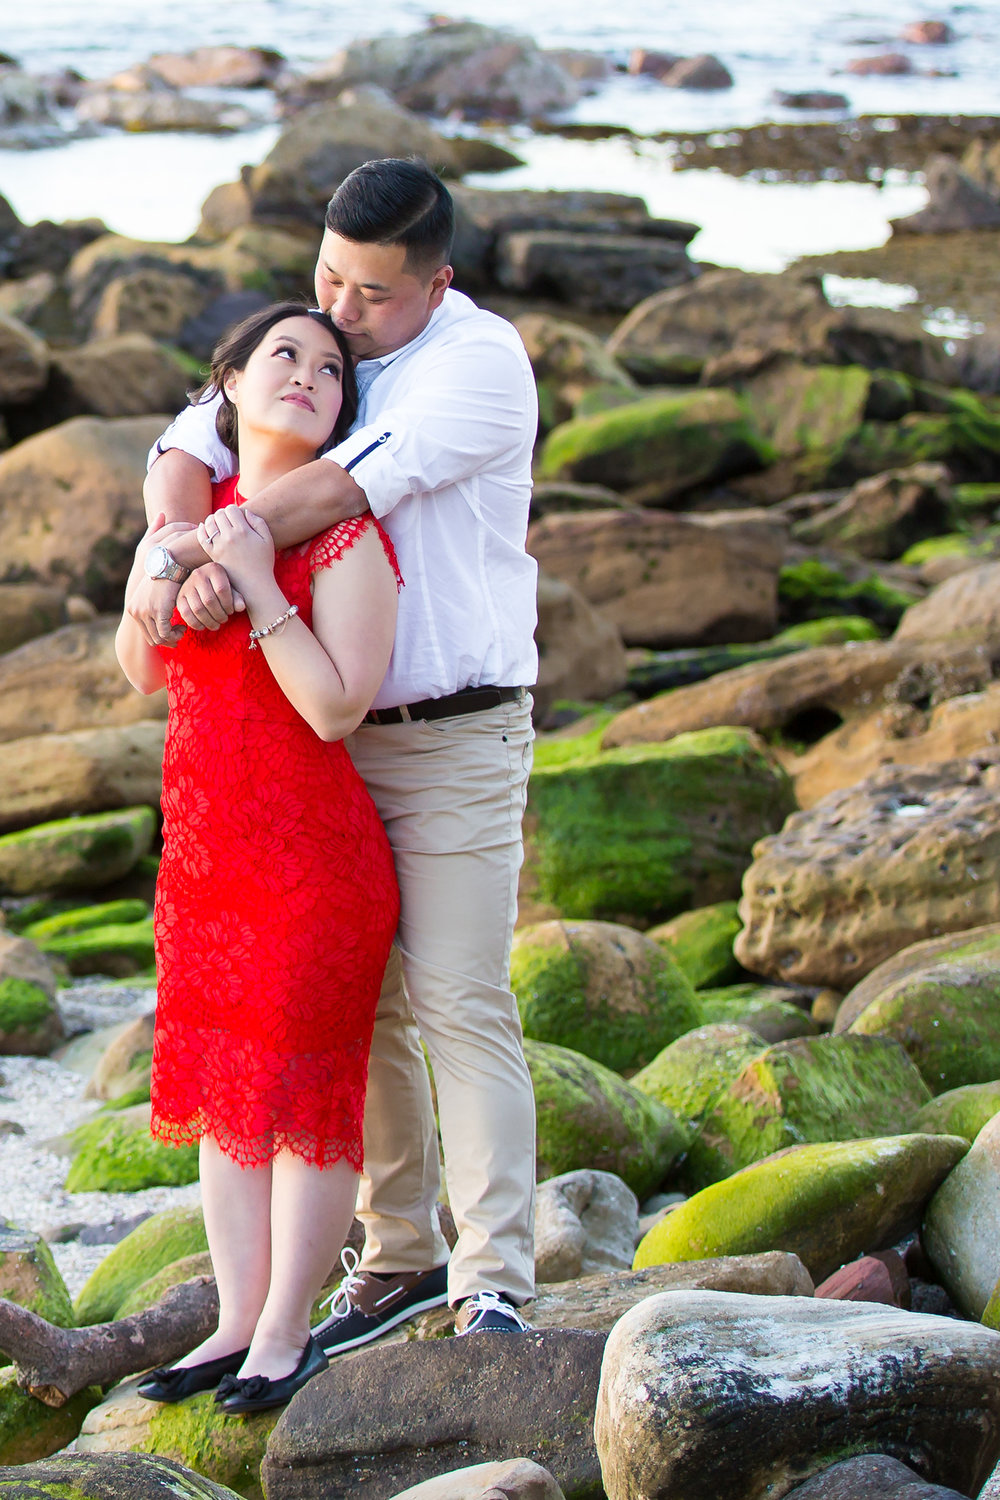 Shelly Beach Manly Pre-Wedding Engagement Session - jennifer Lam Photography (25).jpg